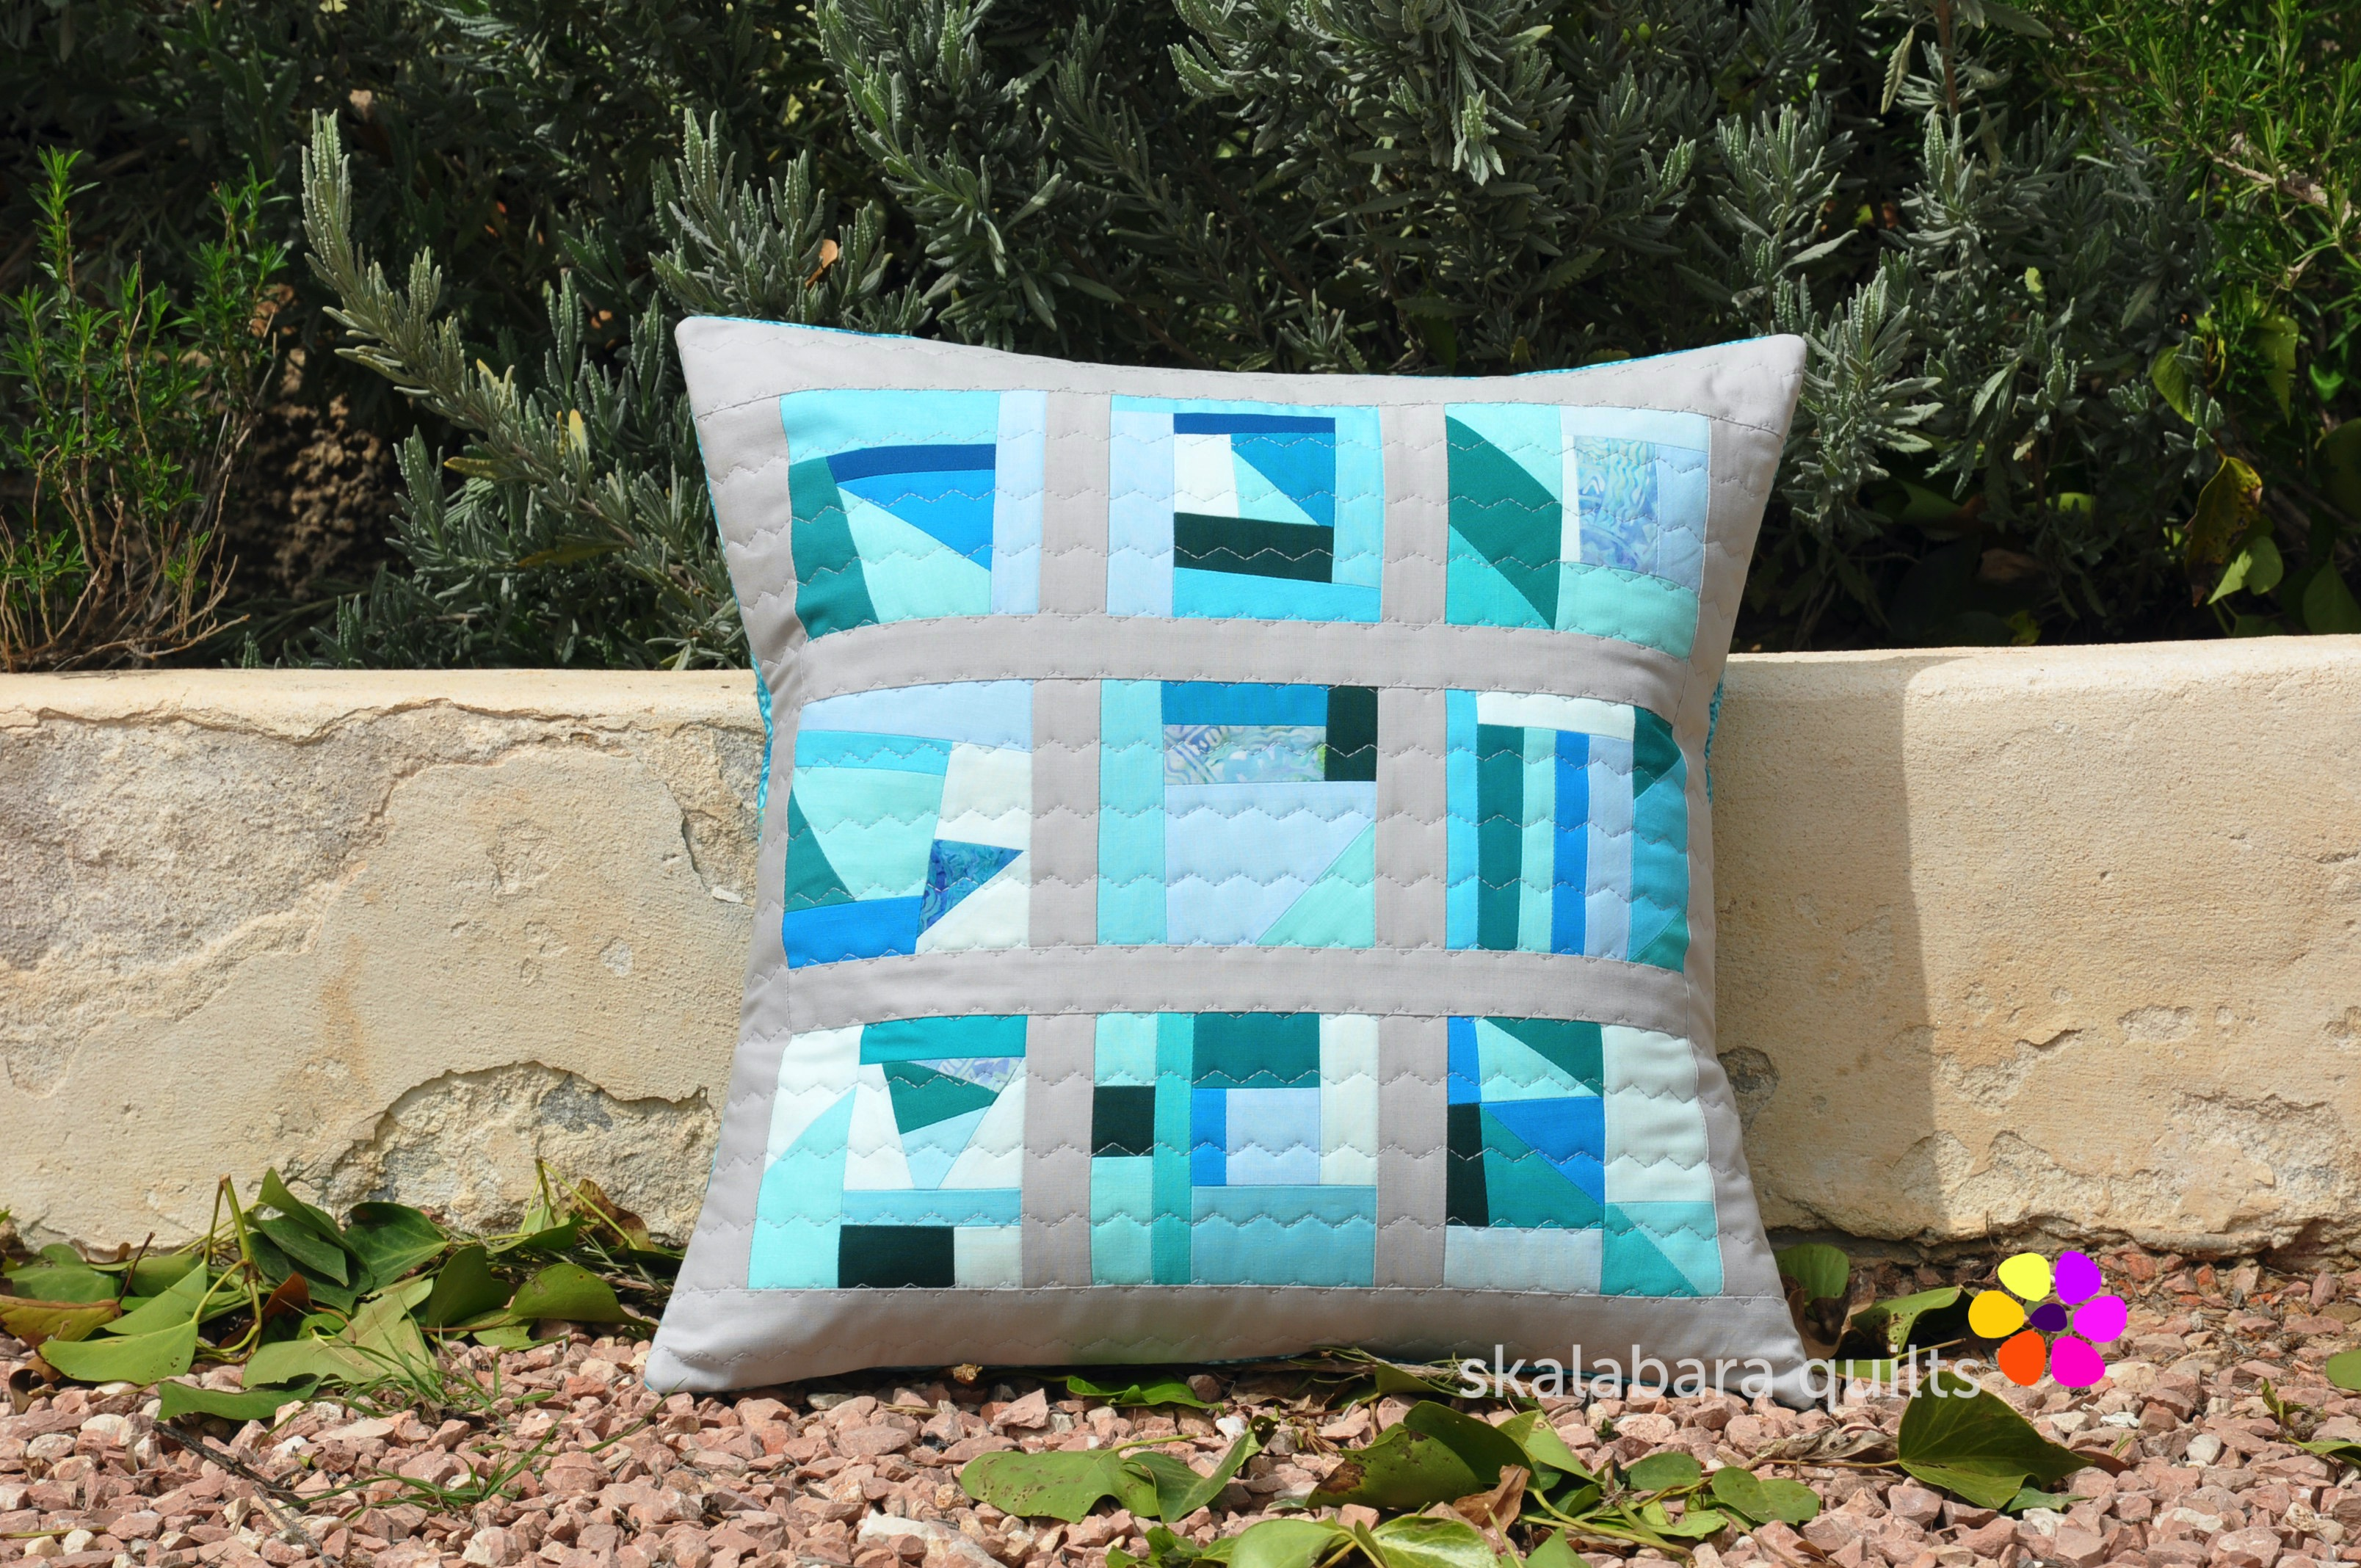 april turquoise cushion 1 - skalabara quilts